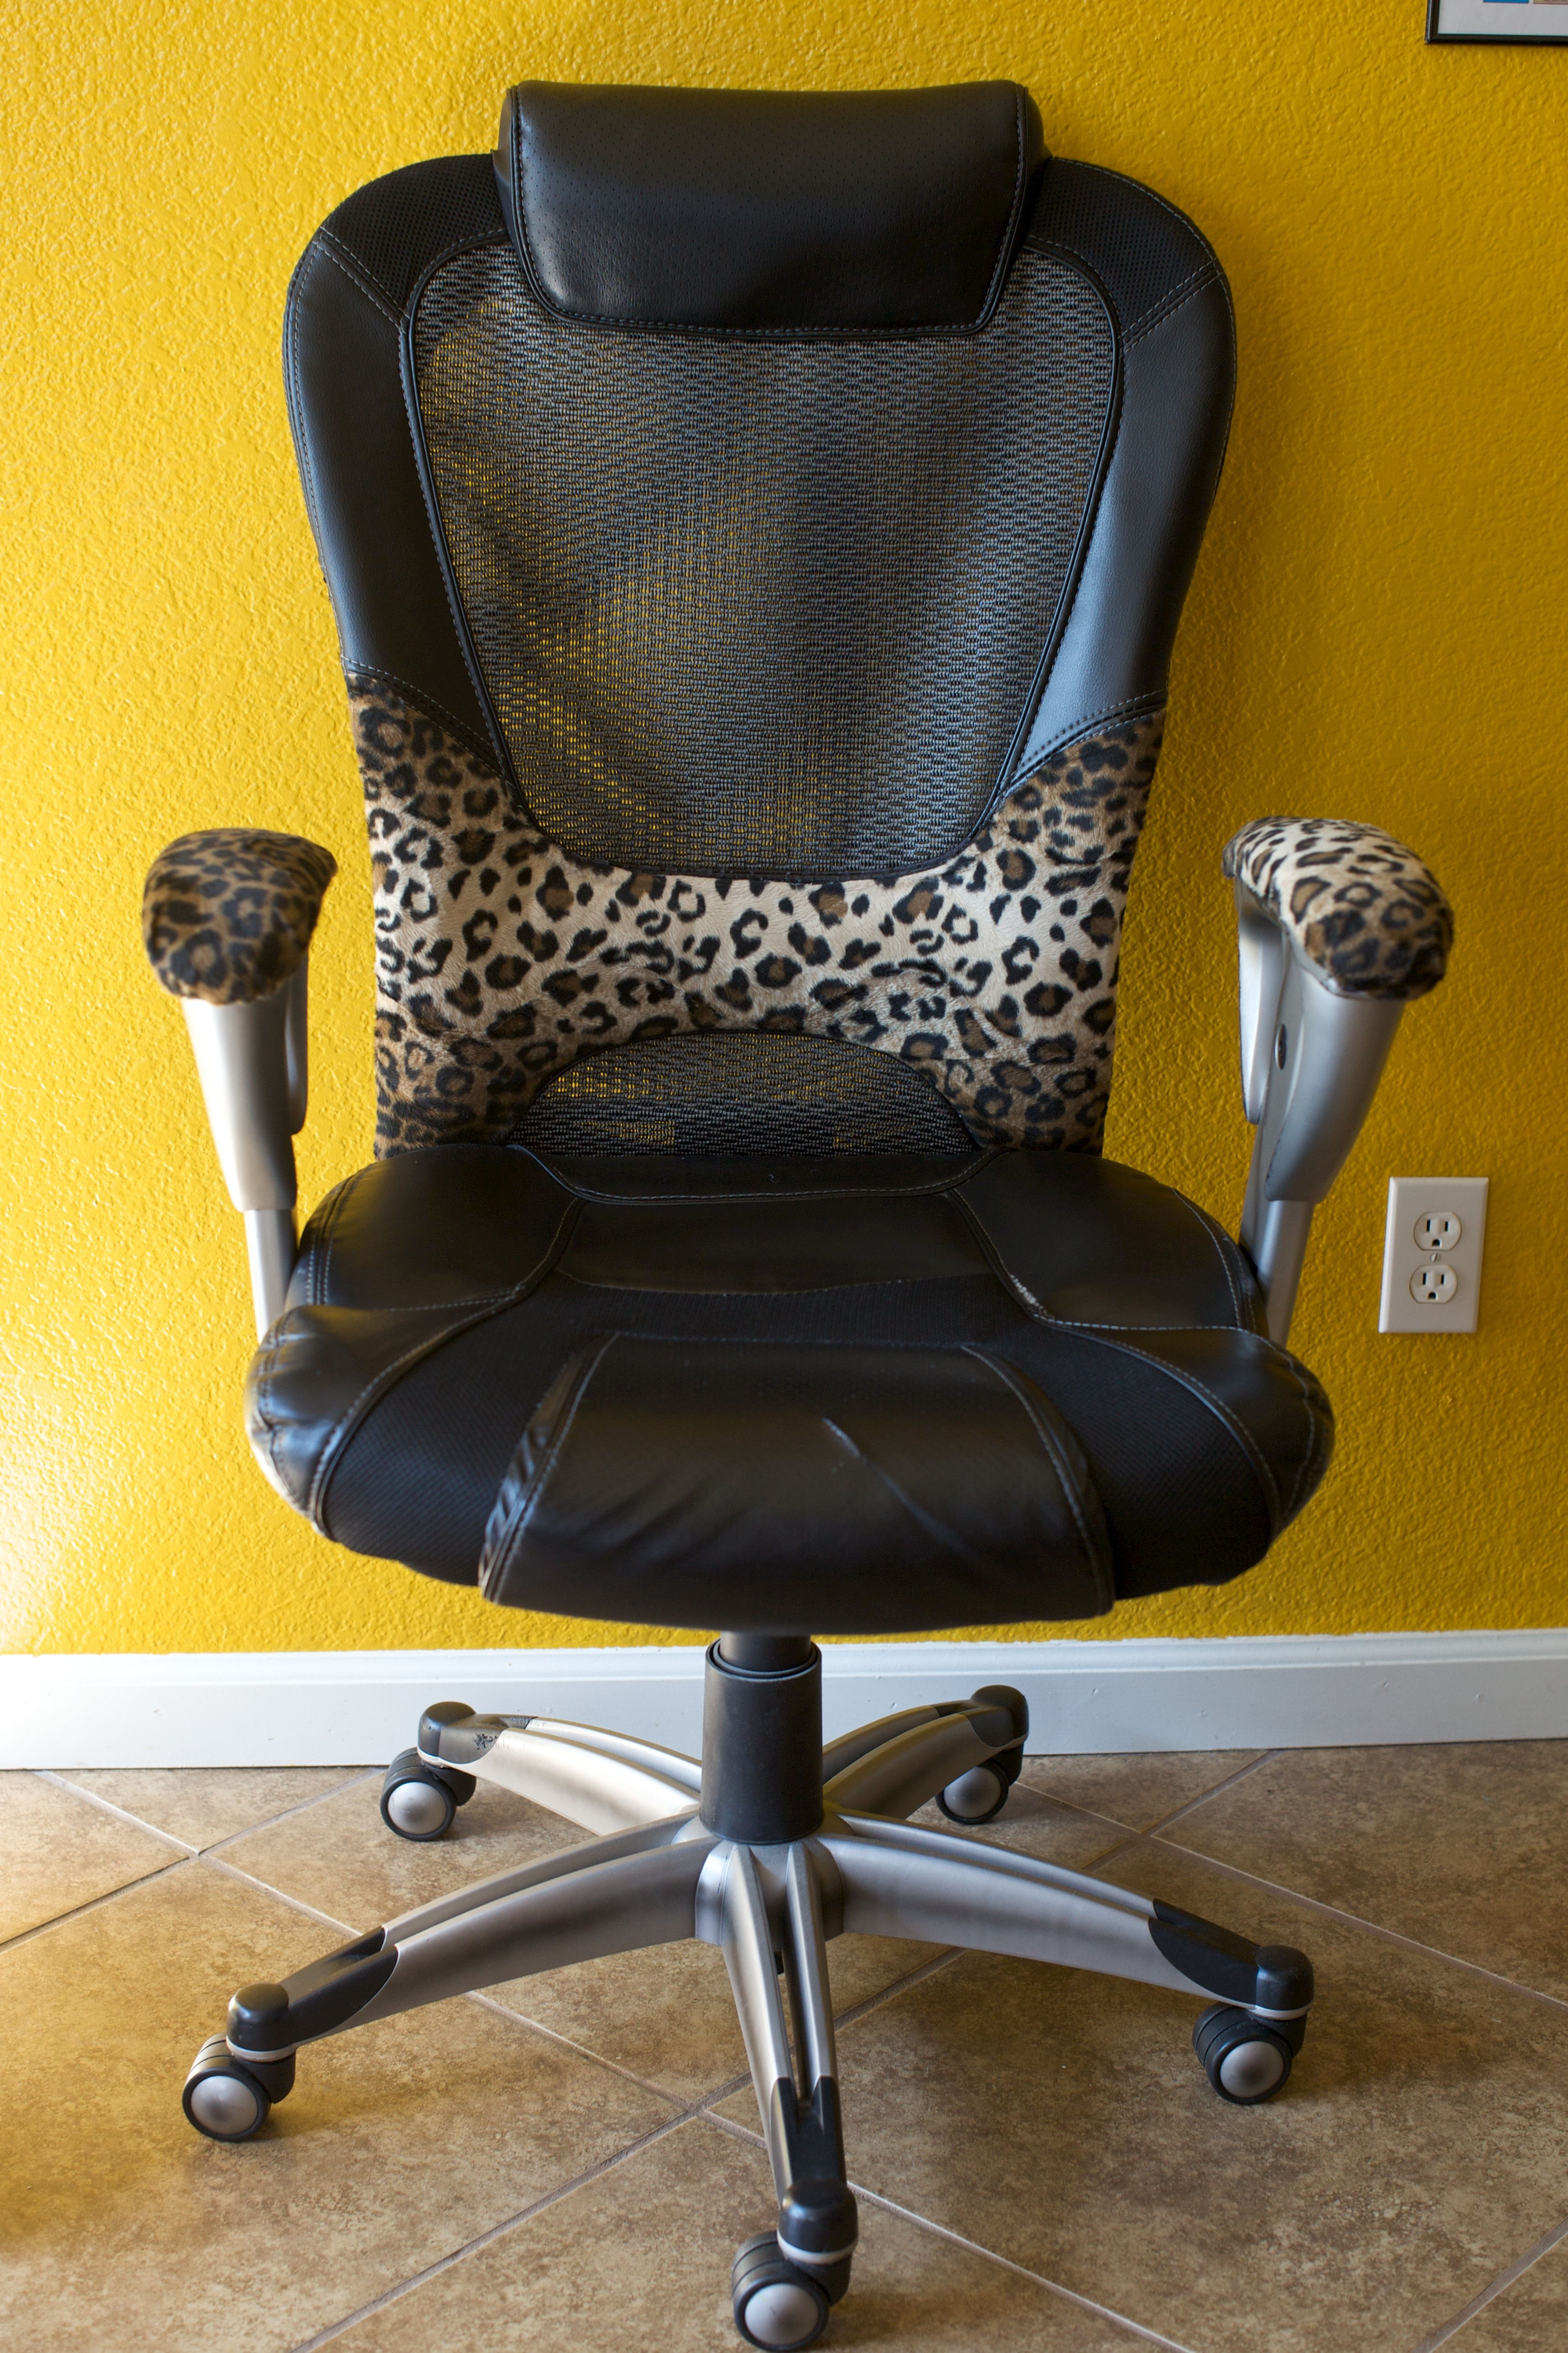 office chair seat covers. Desk Chair Cushion Cover Office Seat Covers R